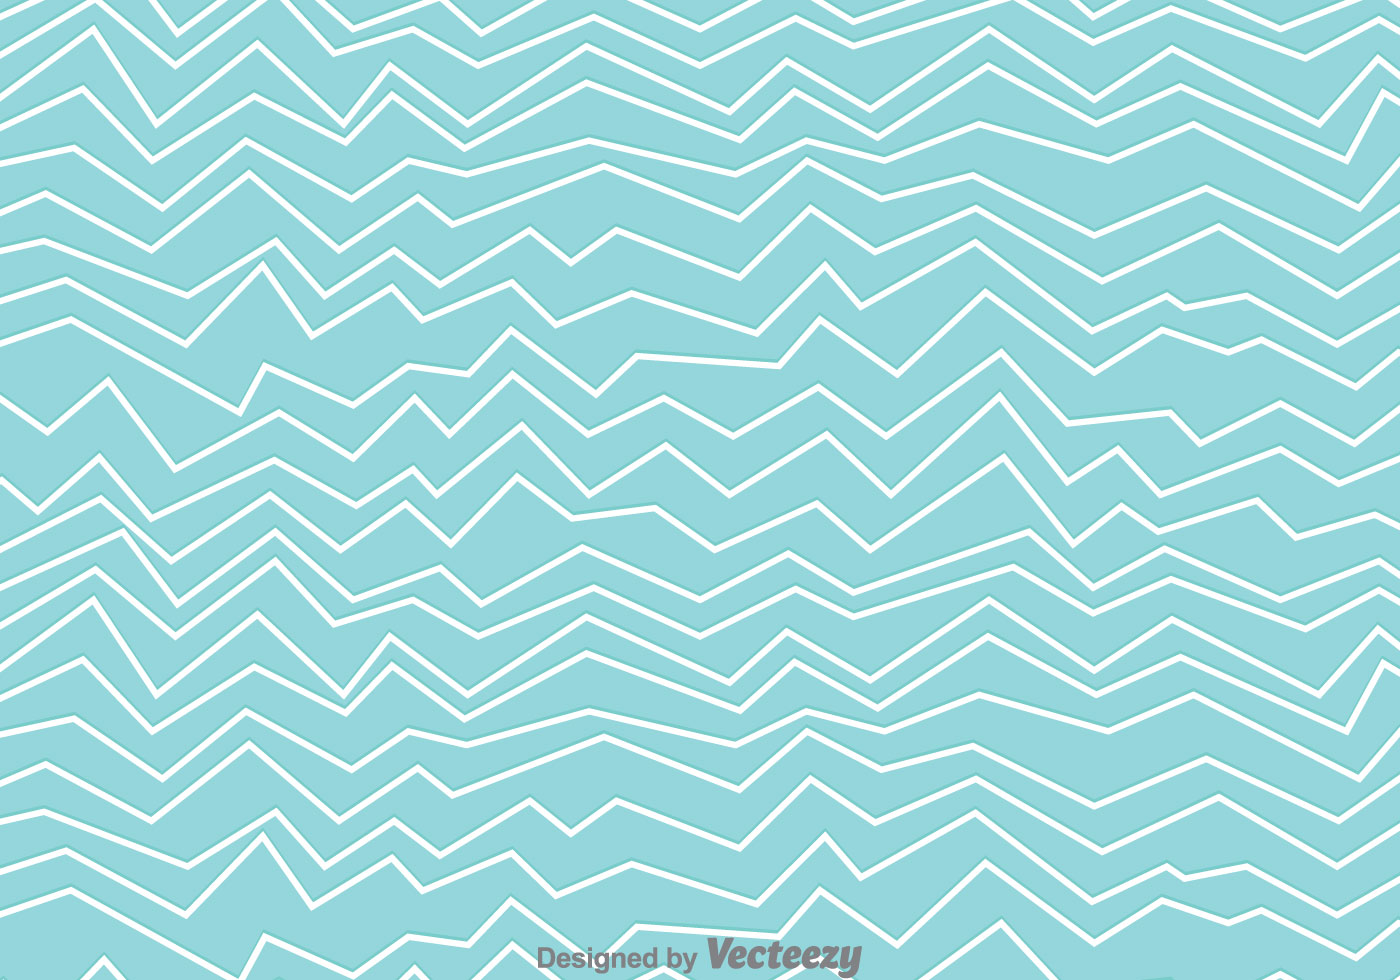 Line Art Background : Zig zag line background download free vector art stock